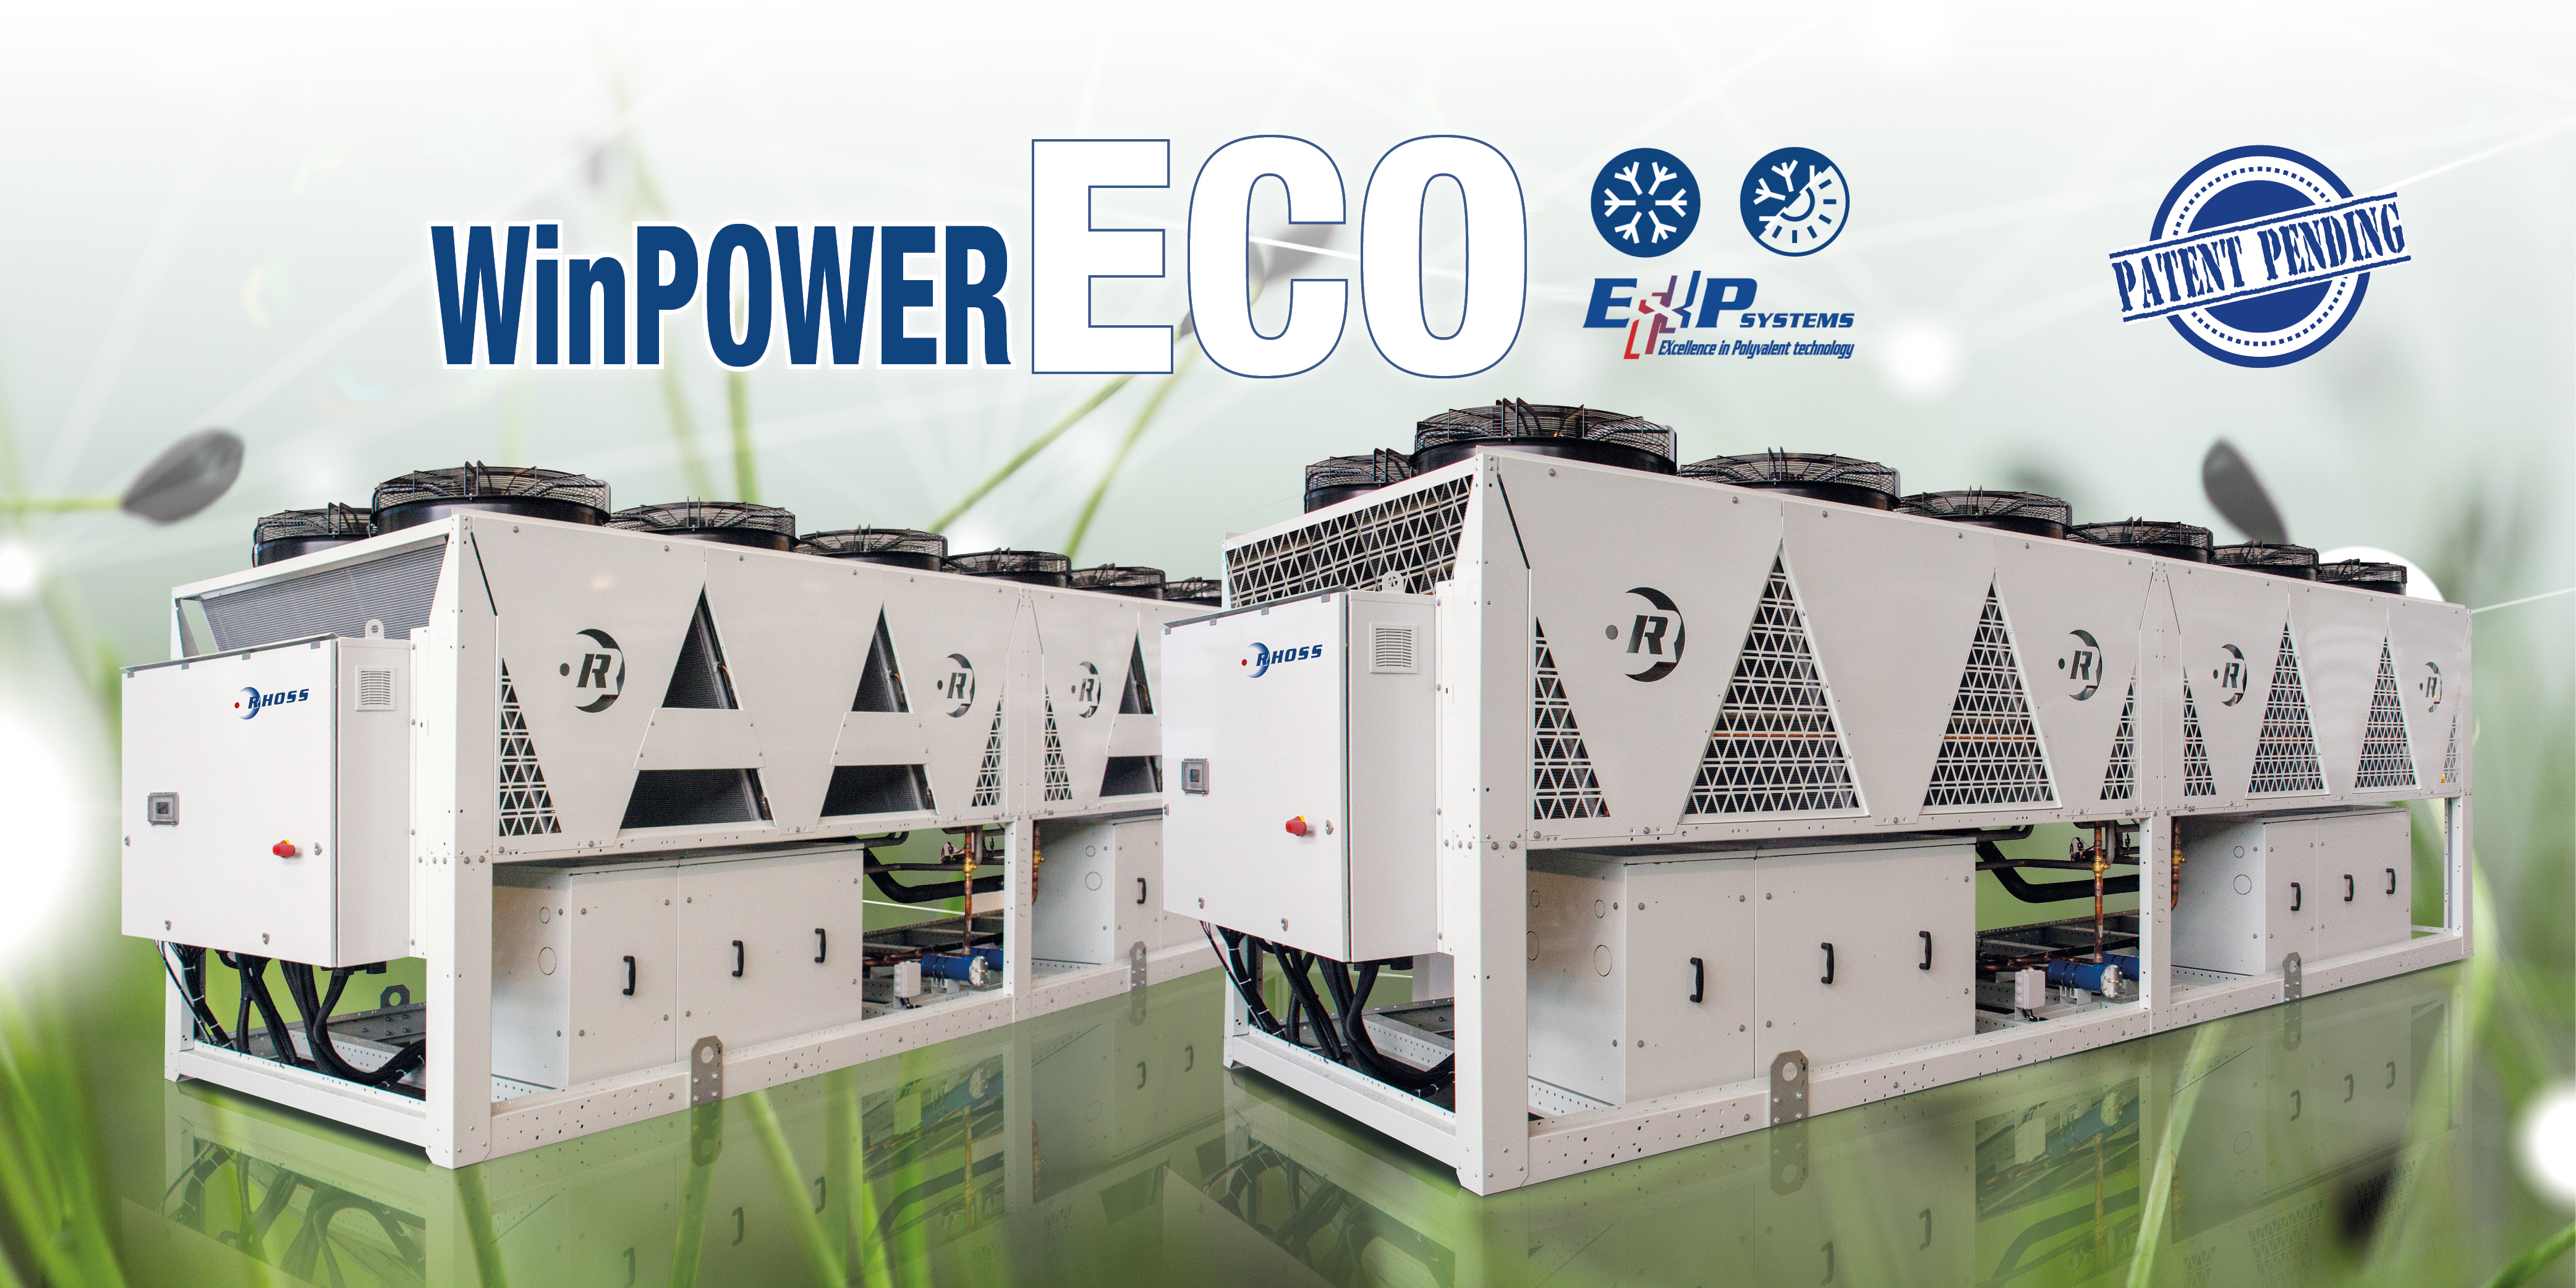 WINPOWER ECO, DESIGNED TO EXCEED EXPECTATIONS!